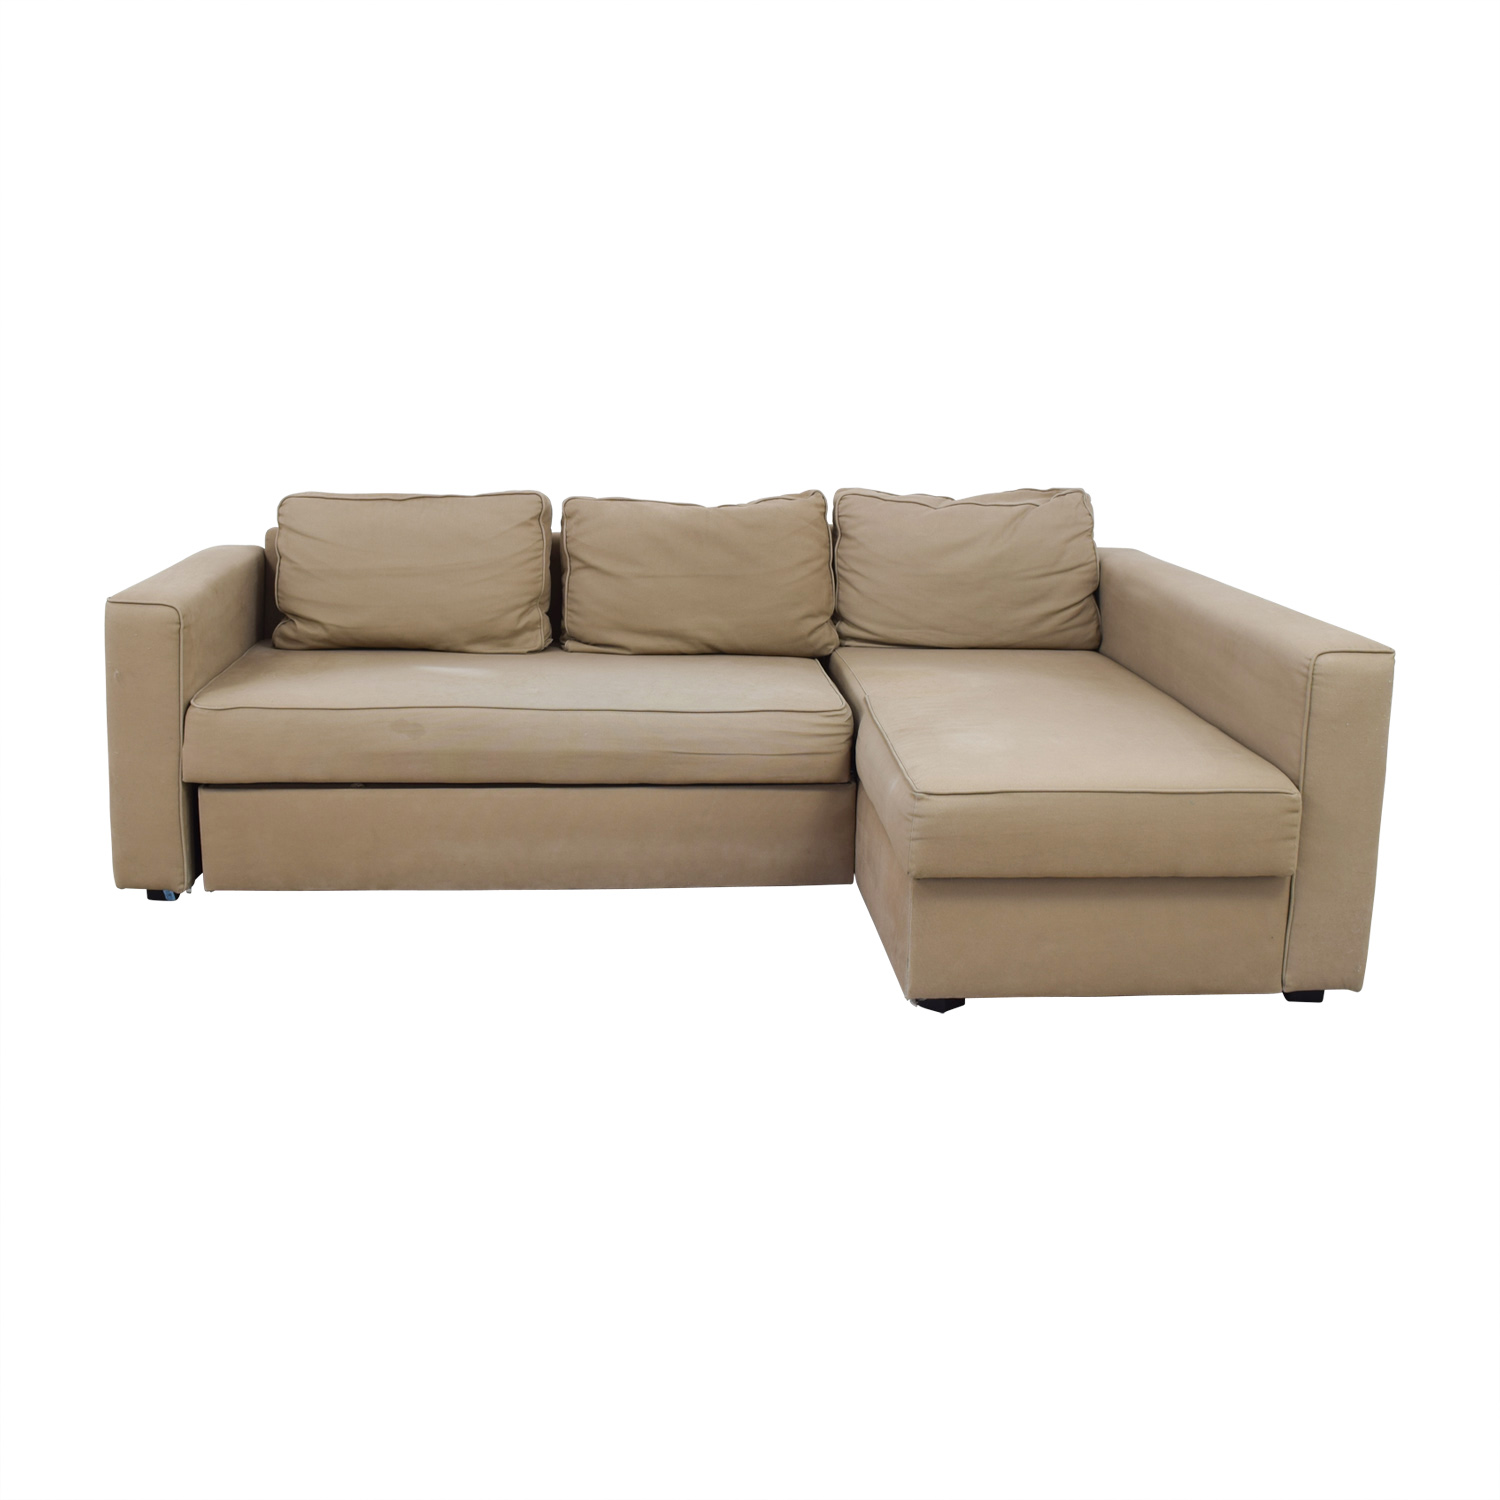 62 ikea ikea manstad sectional sofa bed with on Ikea Sofa Bed With Storage id=54589